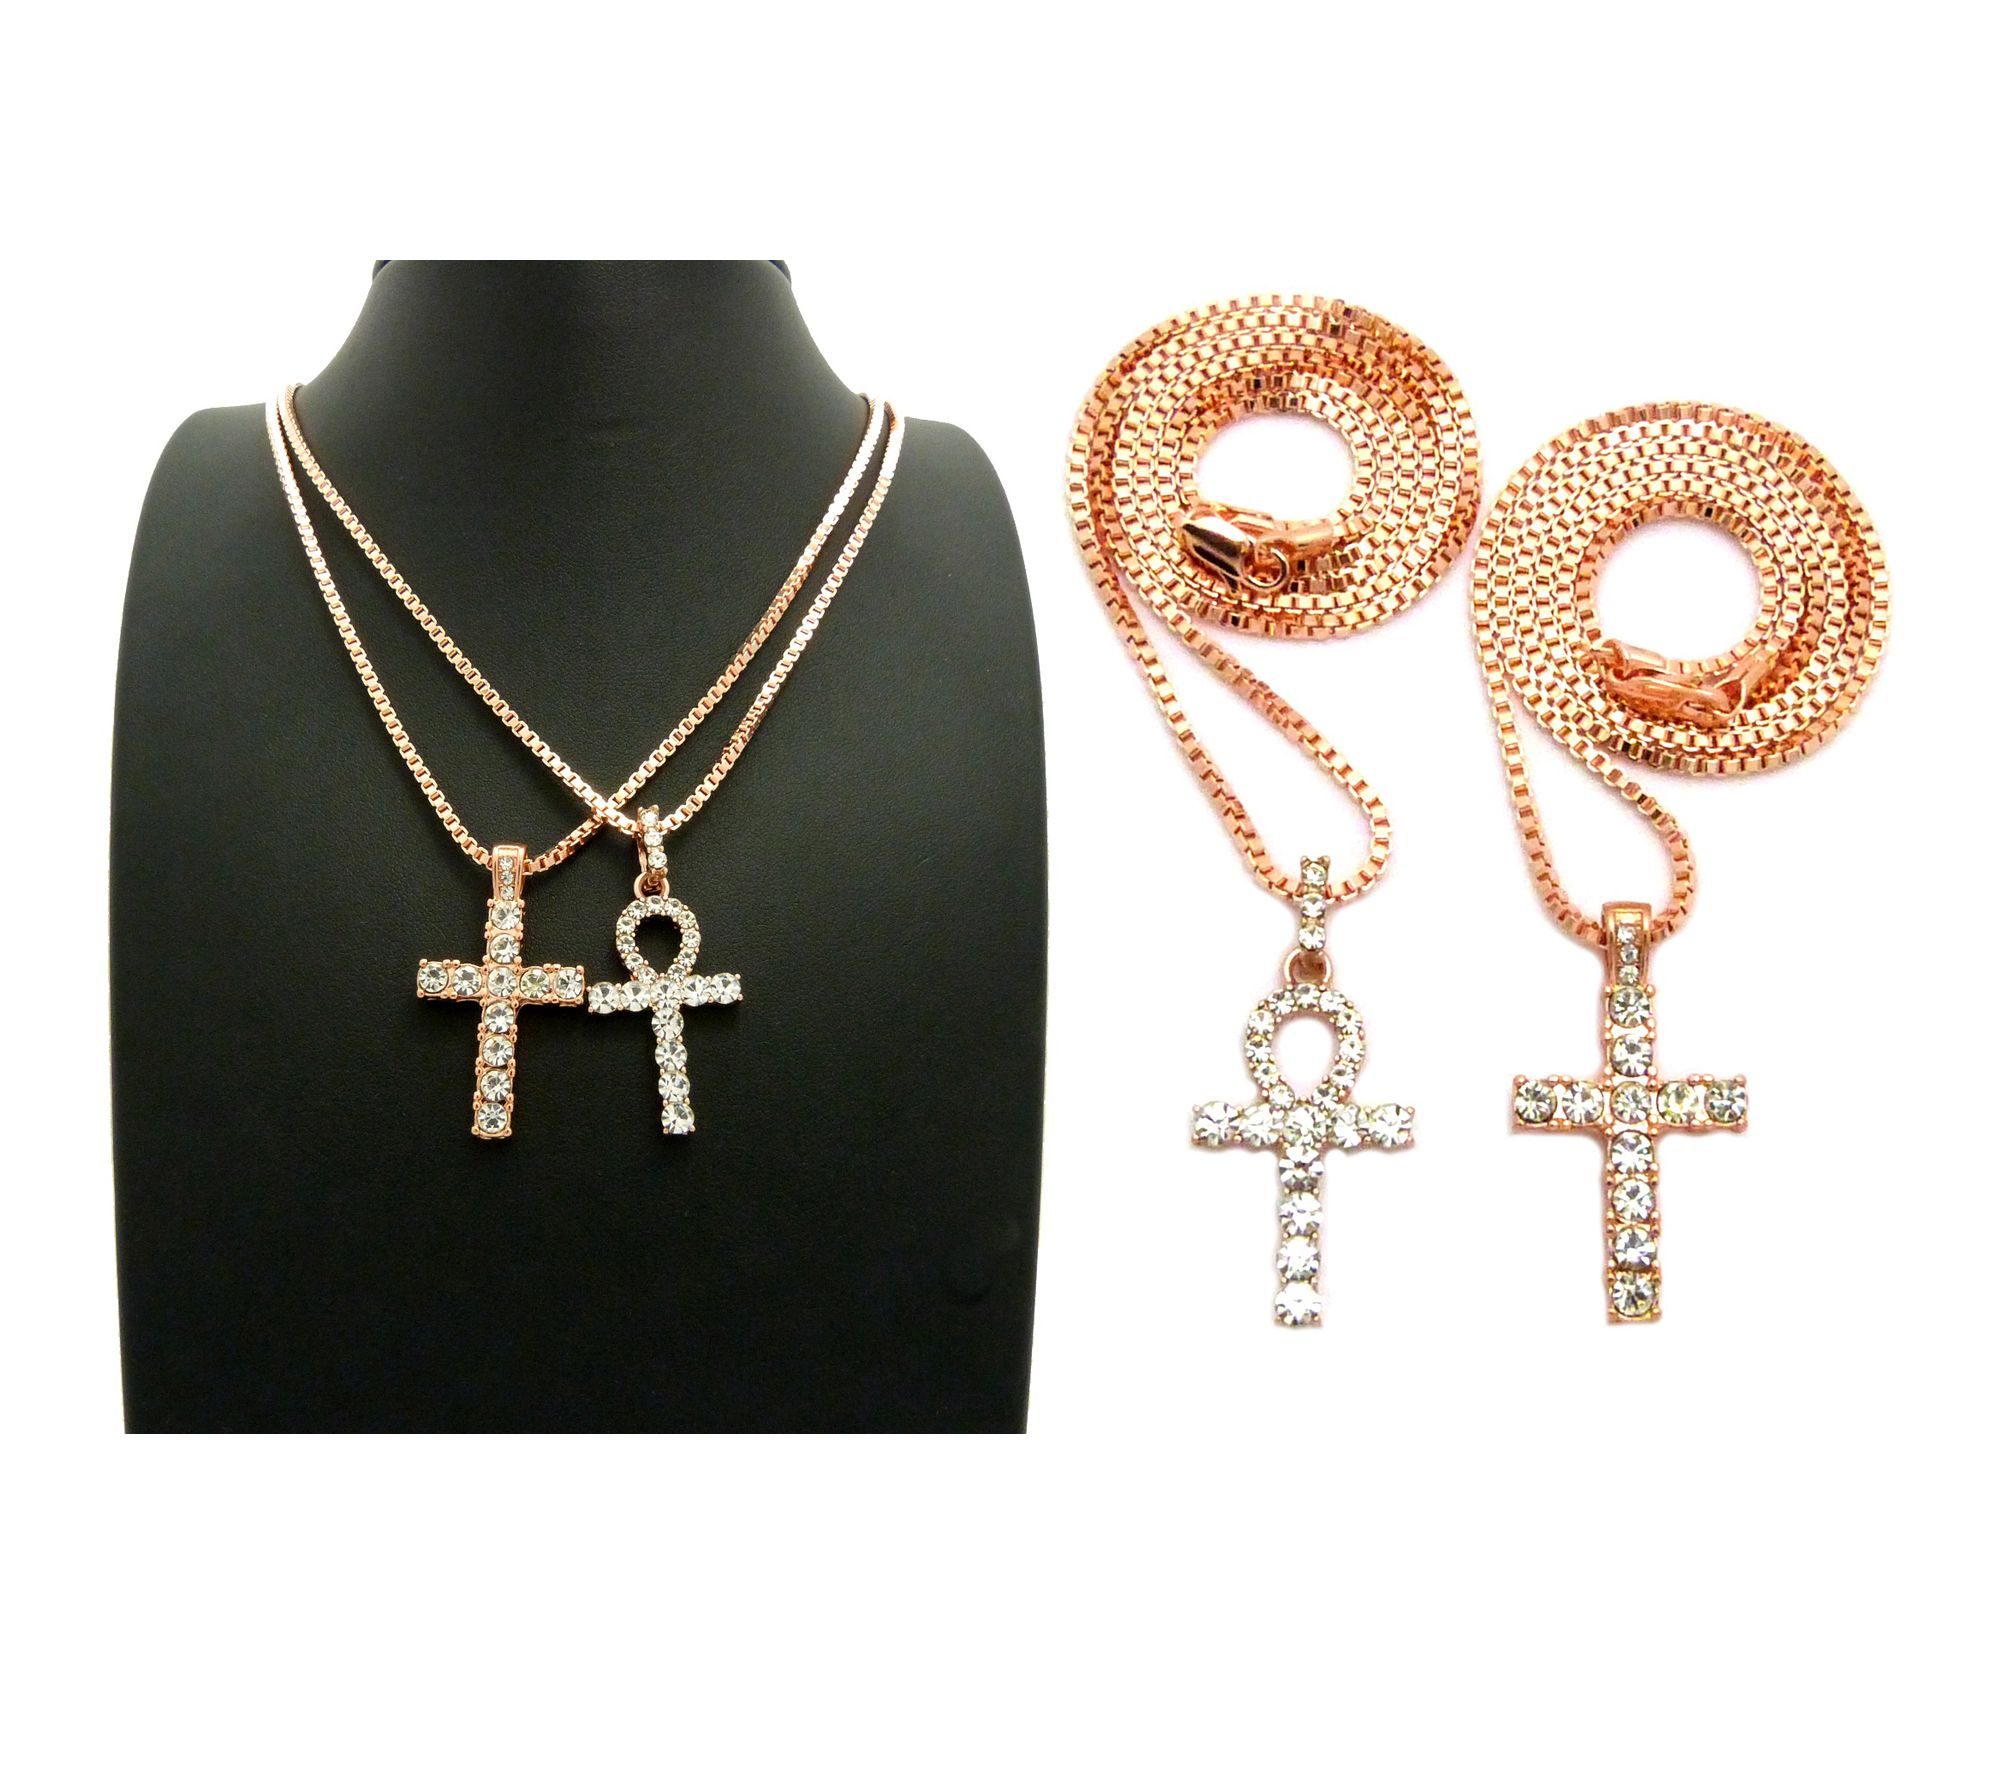 Iced out cross ankh cross pendant 24 box chains hip hop iced out cross ankh cross pendant 24 box chains hip hop necklace set rc2463 mozeypictures Gallery